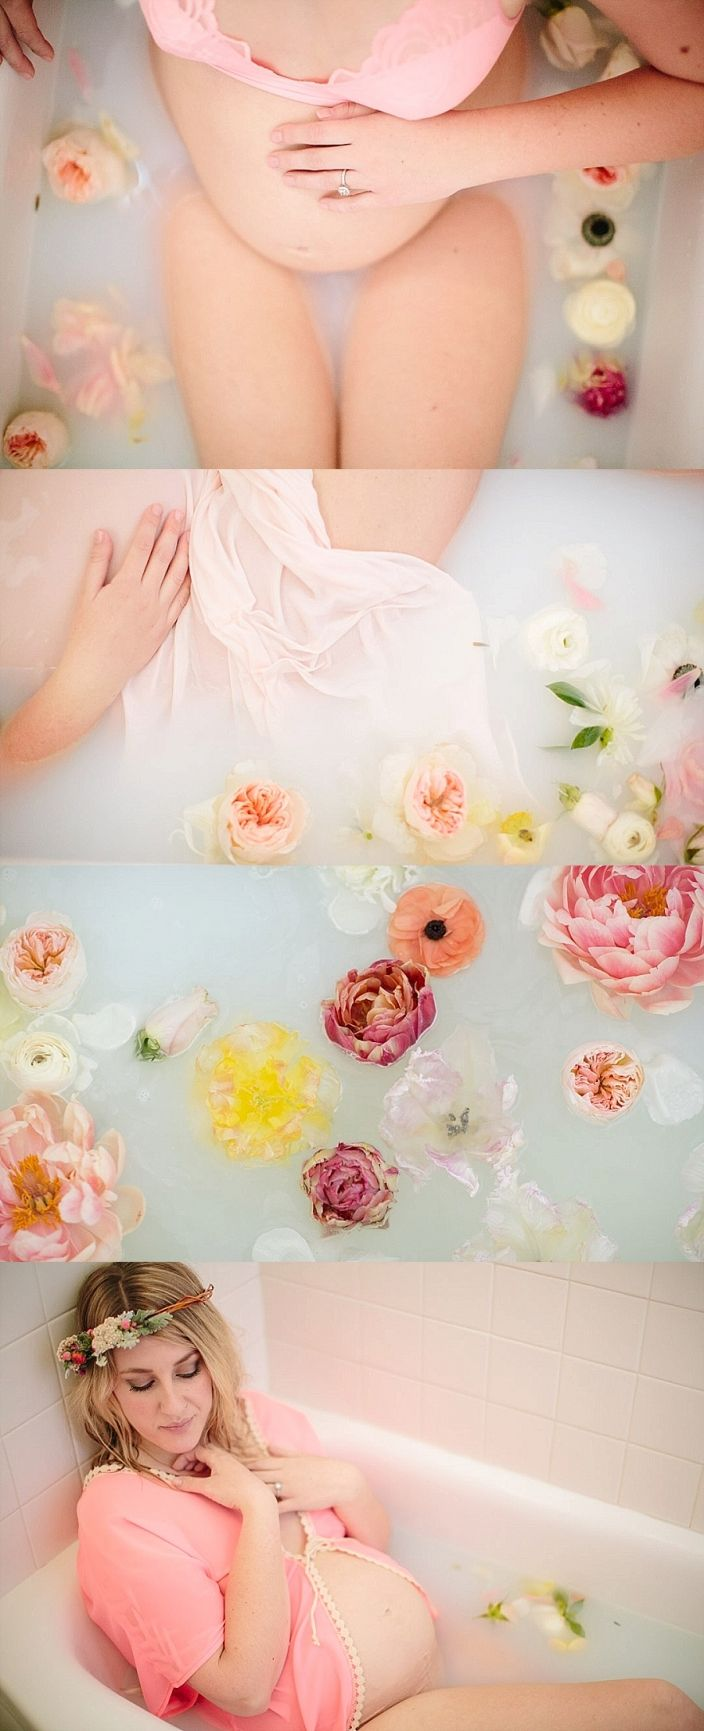 50 best Milk Baths.. images on Pinterest